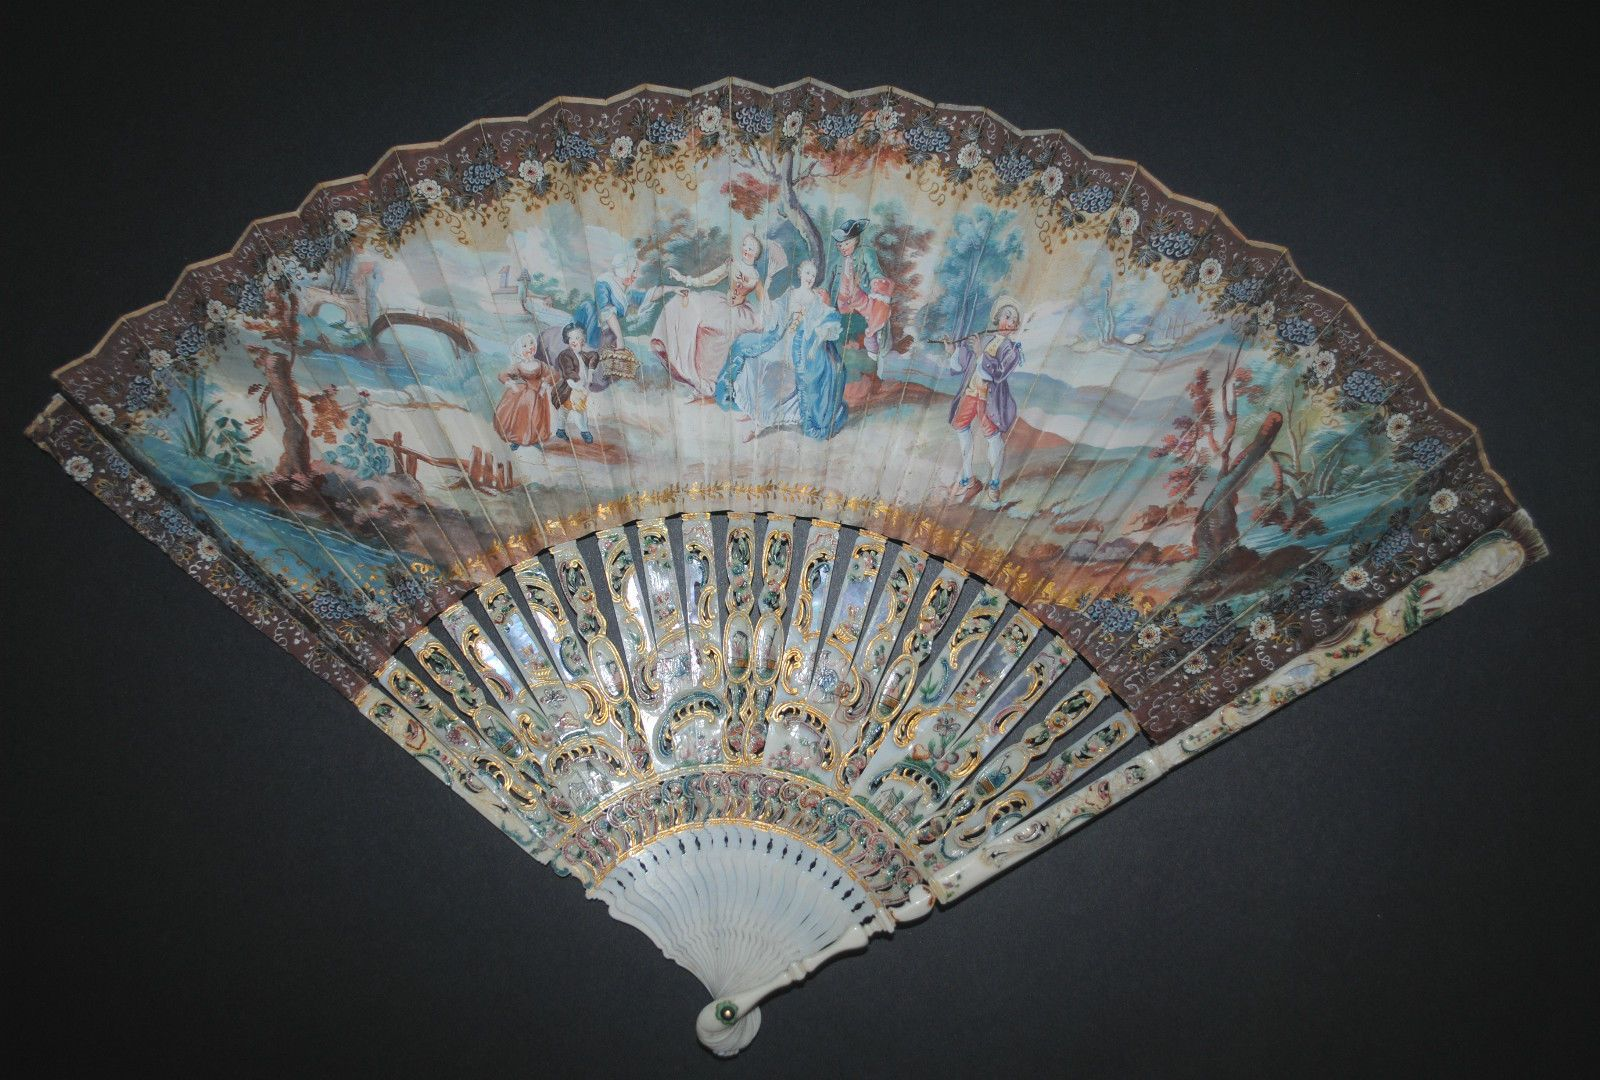 FINE QUALITY ANTIQUE FRENCH 18TH HAND PAINTED FIGURAL SCENE LOUIS XV FAN | eBay